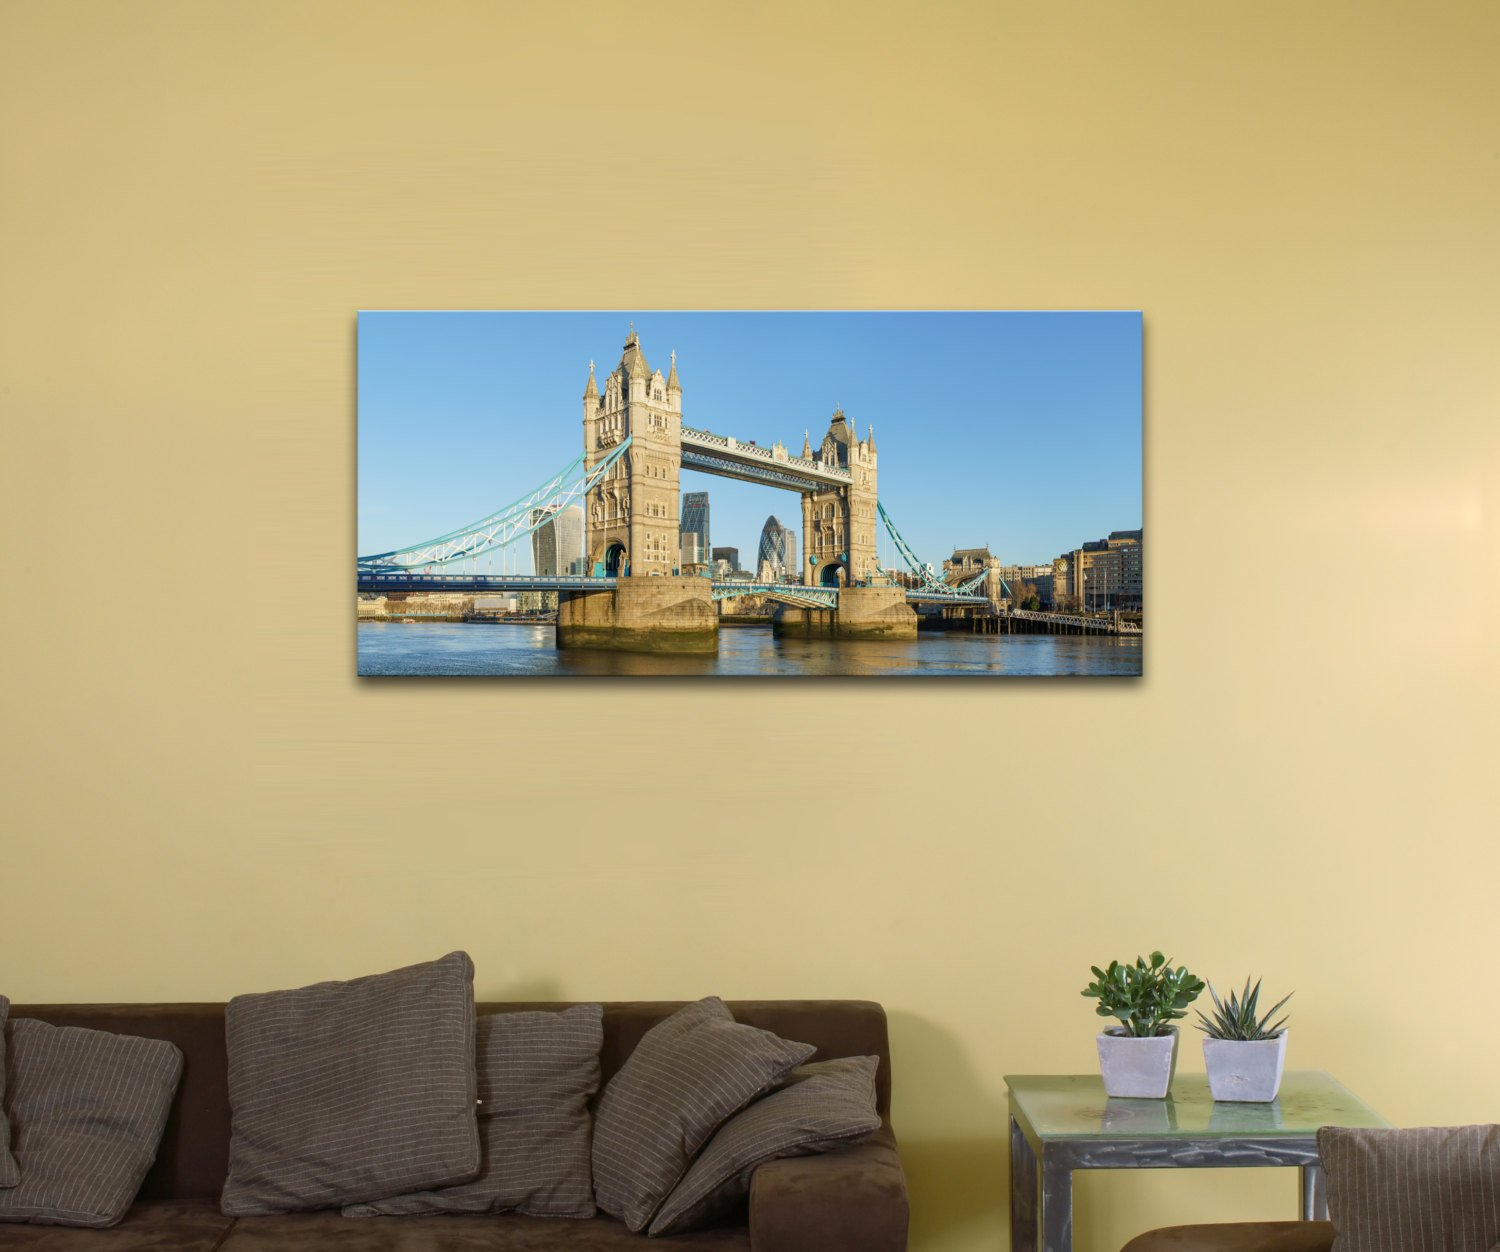 Tower Bridge, United Kingdom (8″ x 16″) – Canvas Wrap Print